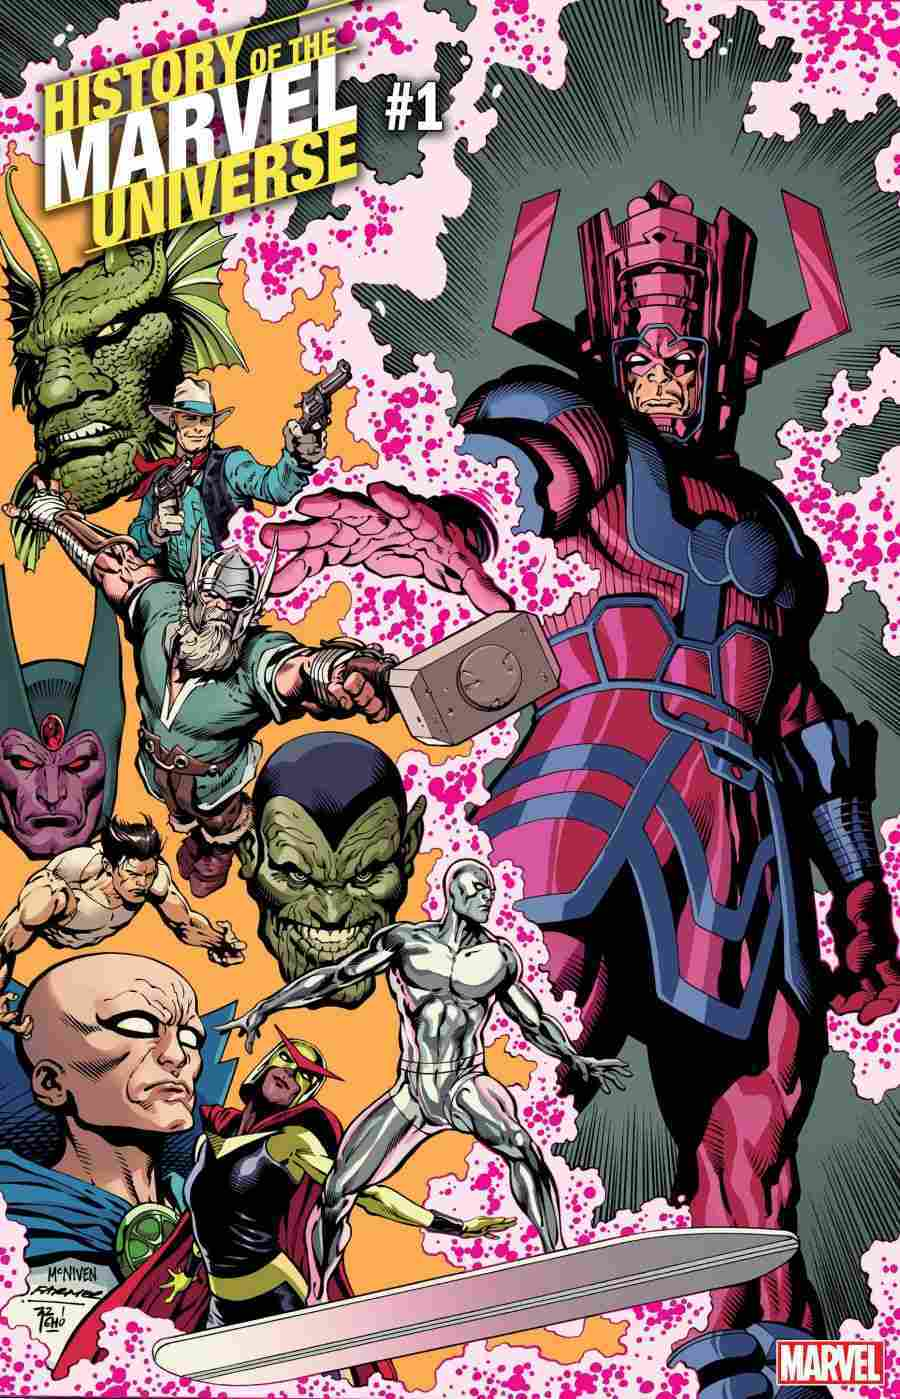 definitive history of the marvel universe to be revealed in new series